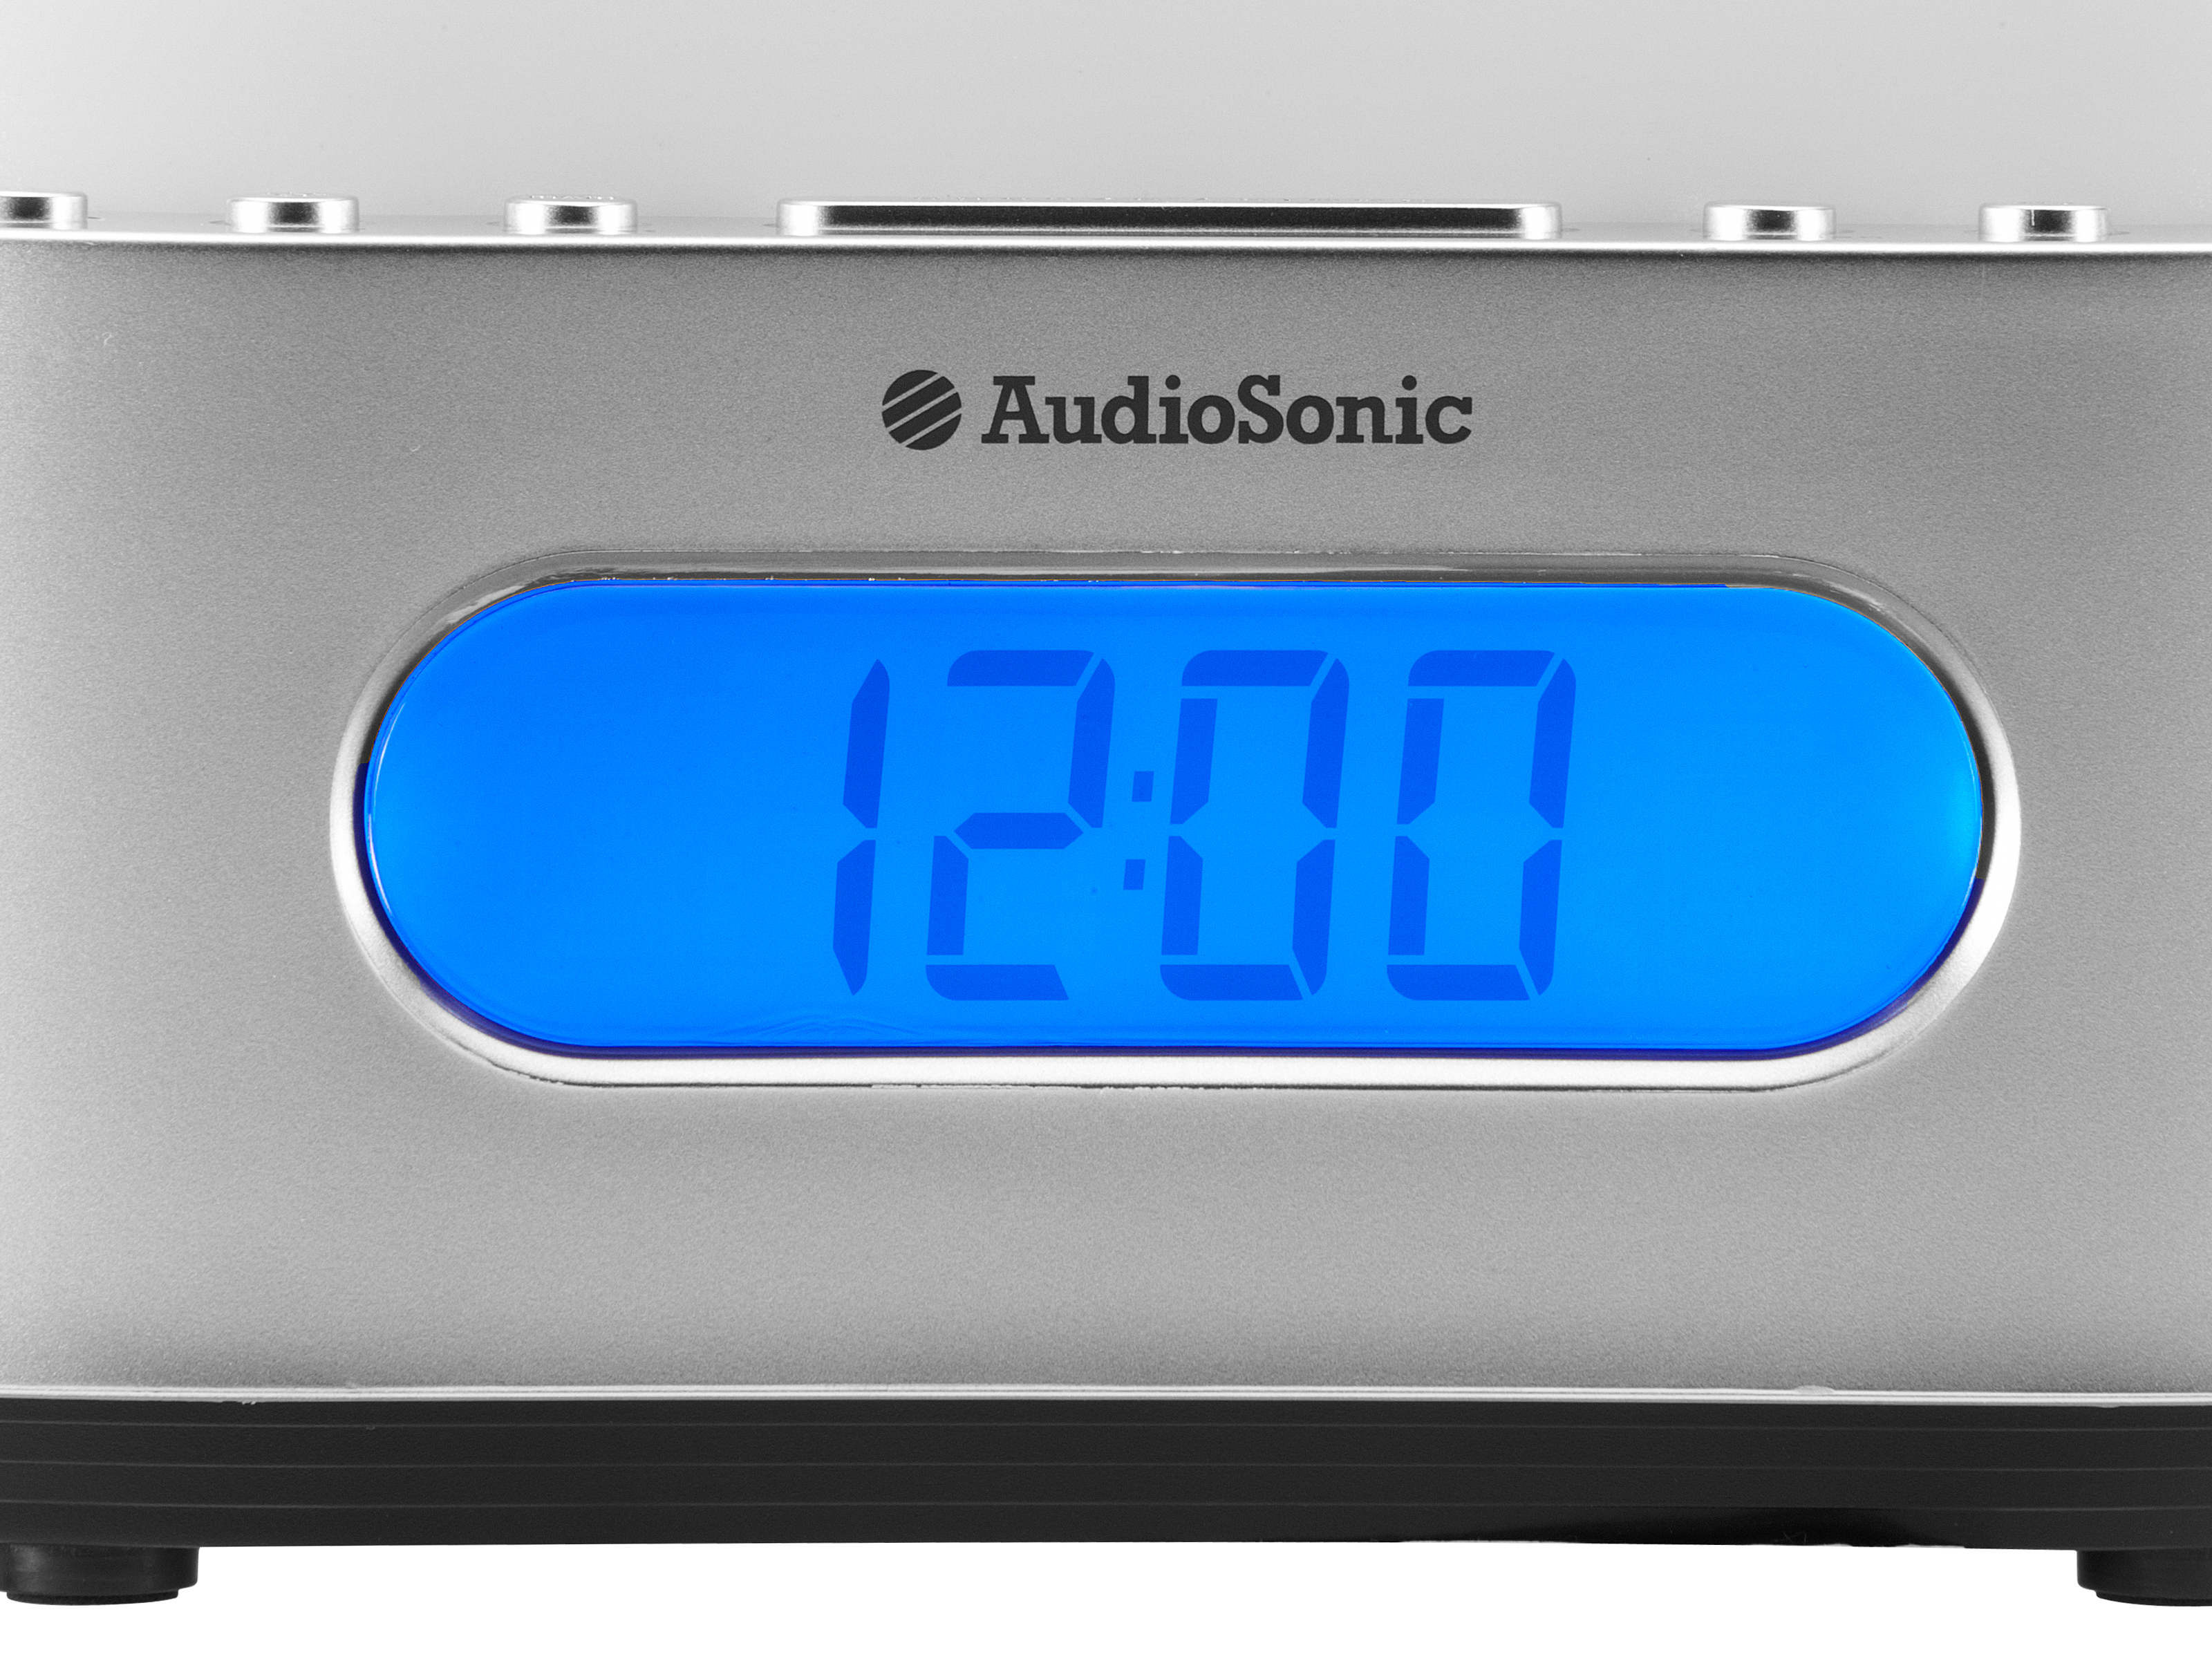 AudioSonic CL-505 Orologio Digitale Argento radio